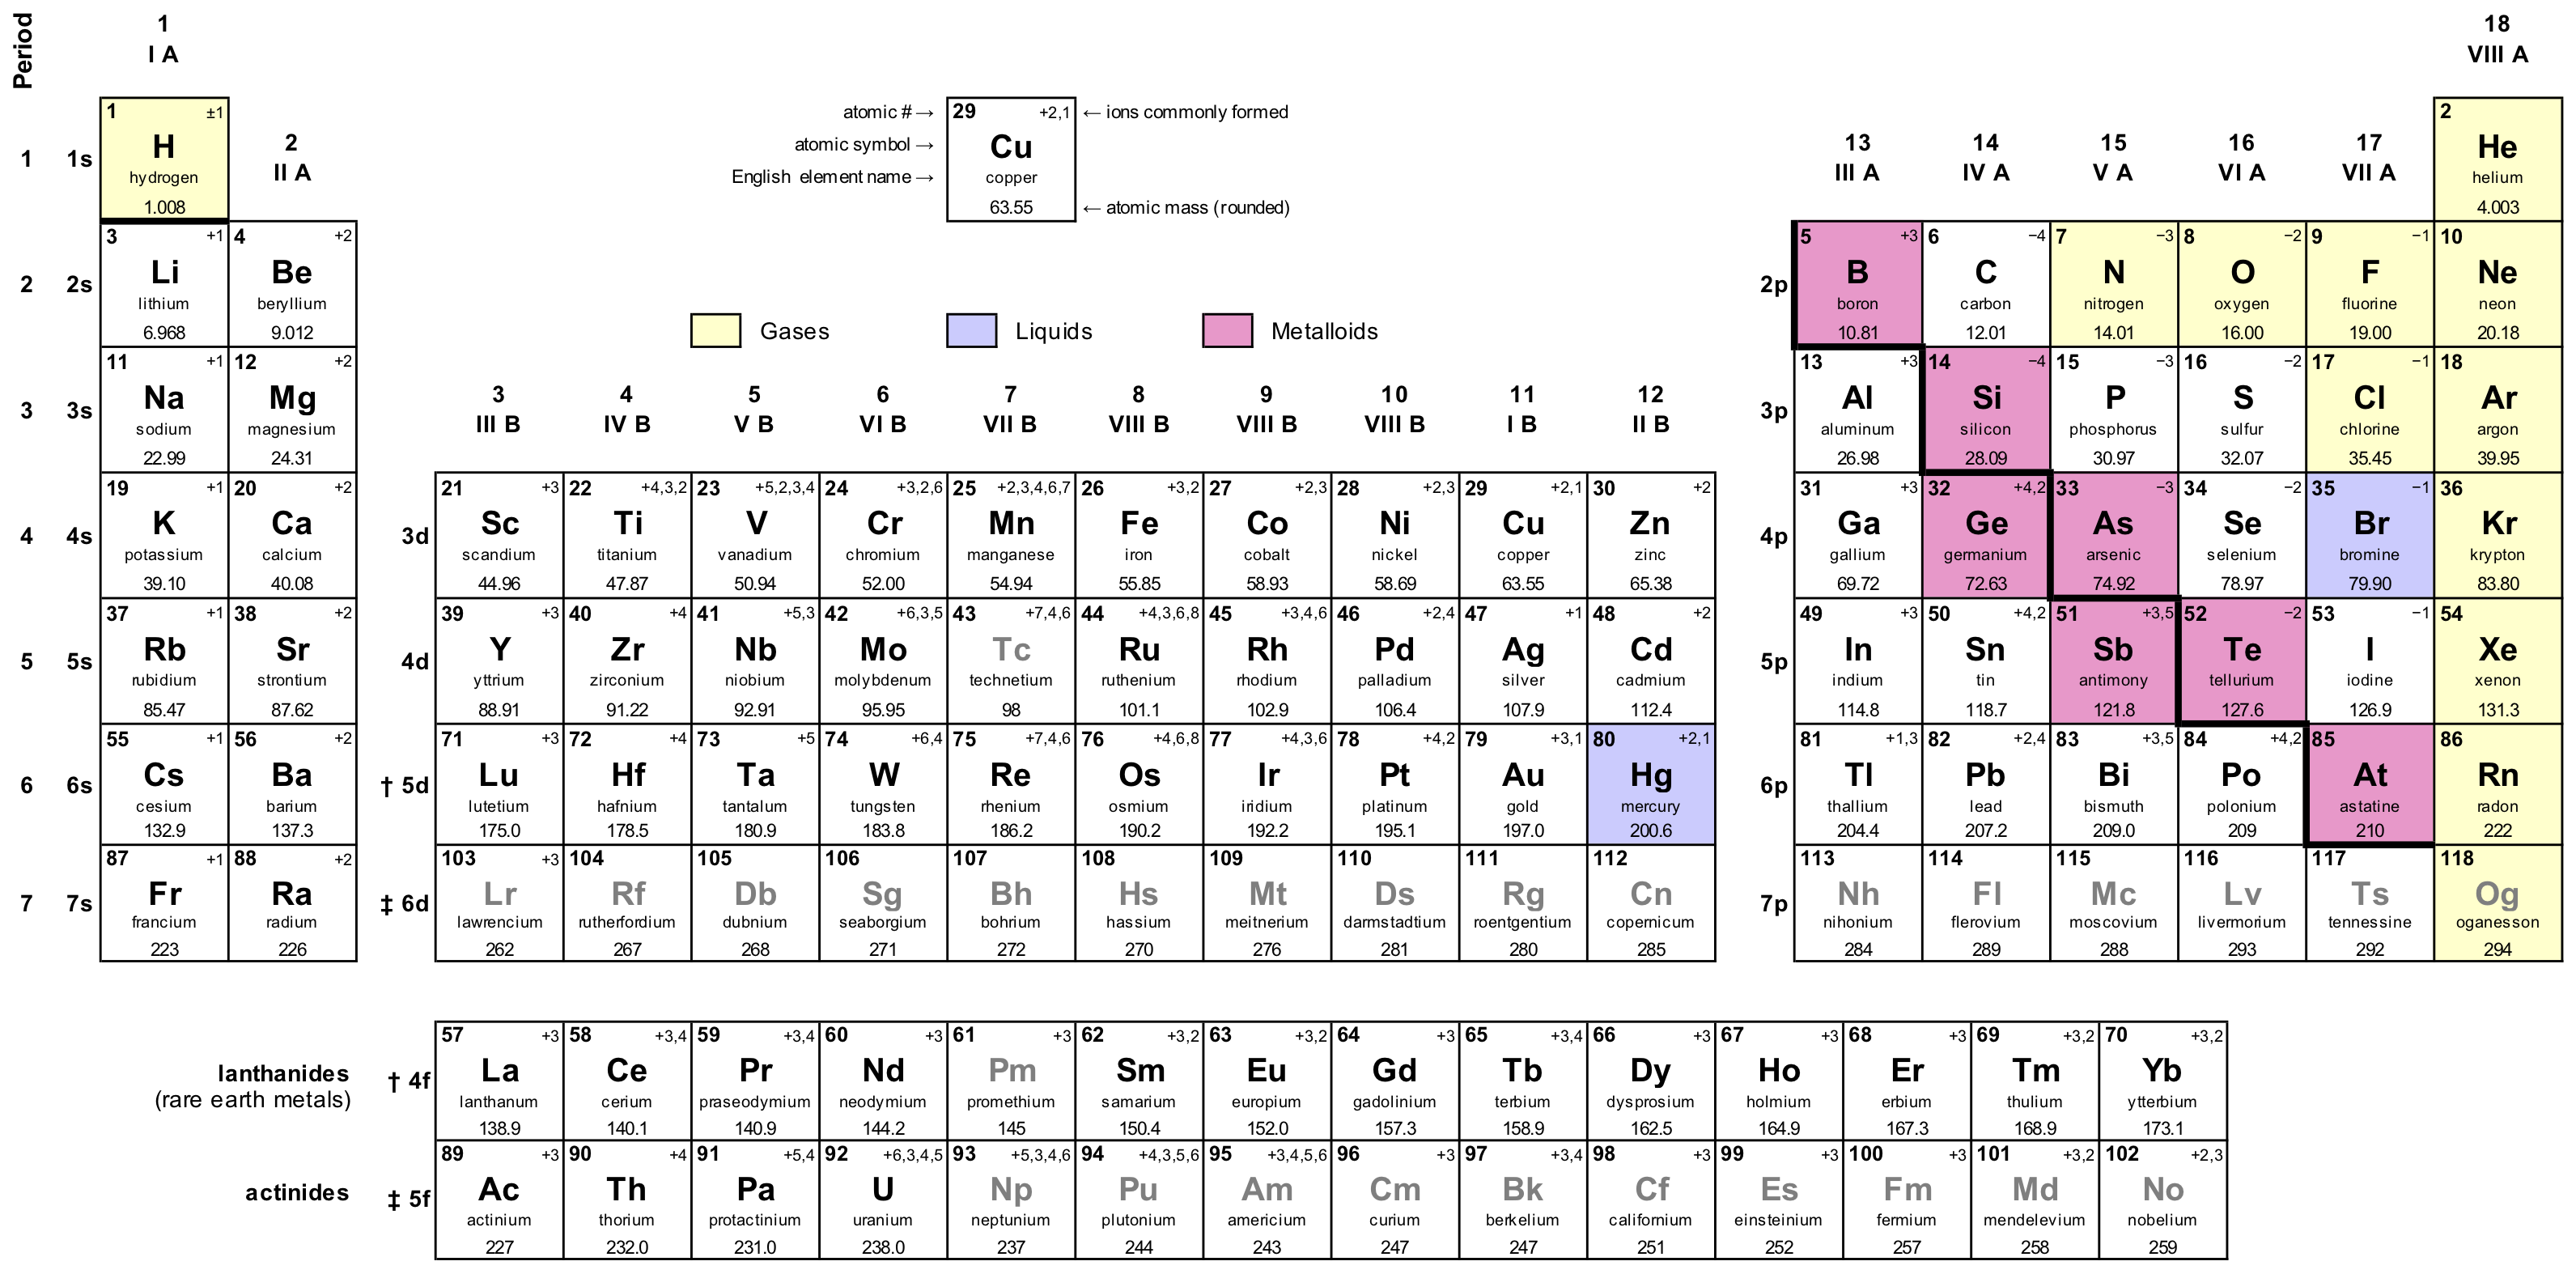 Hydrogen is up to the left of the periodic table, and oxygen is up to the right.